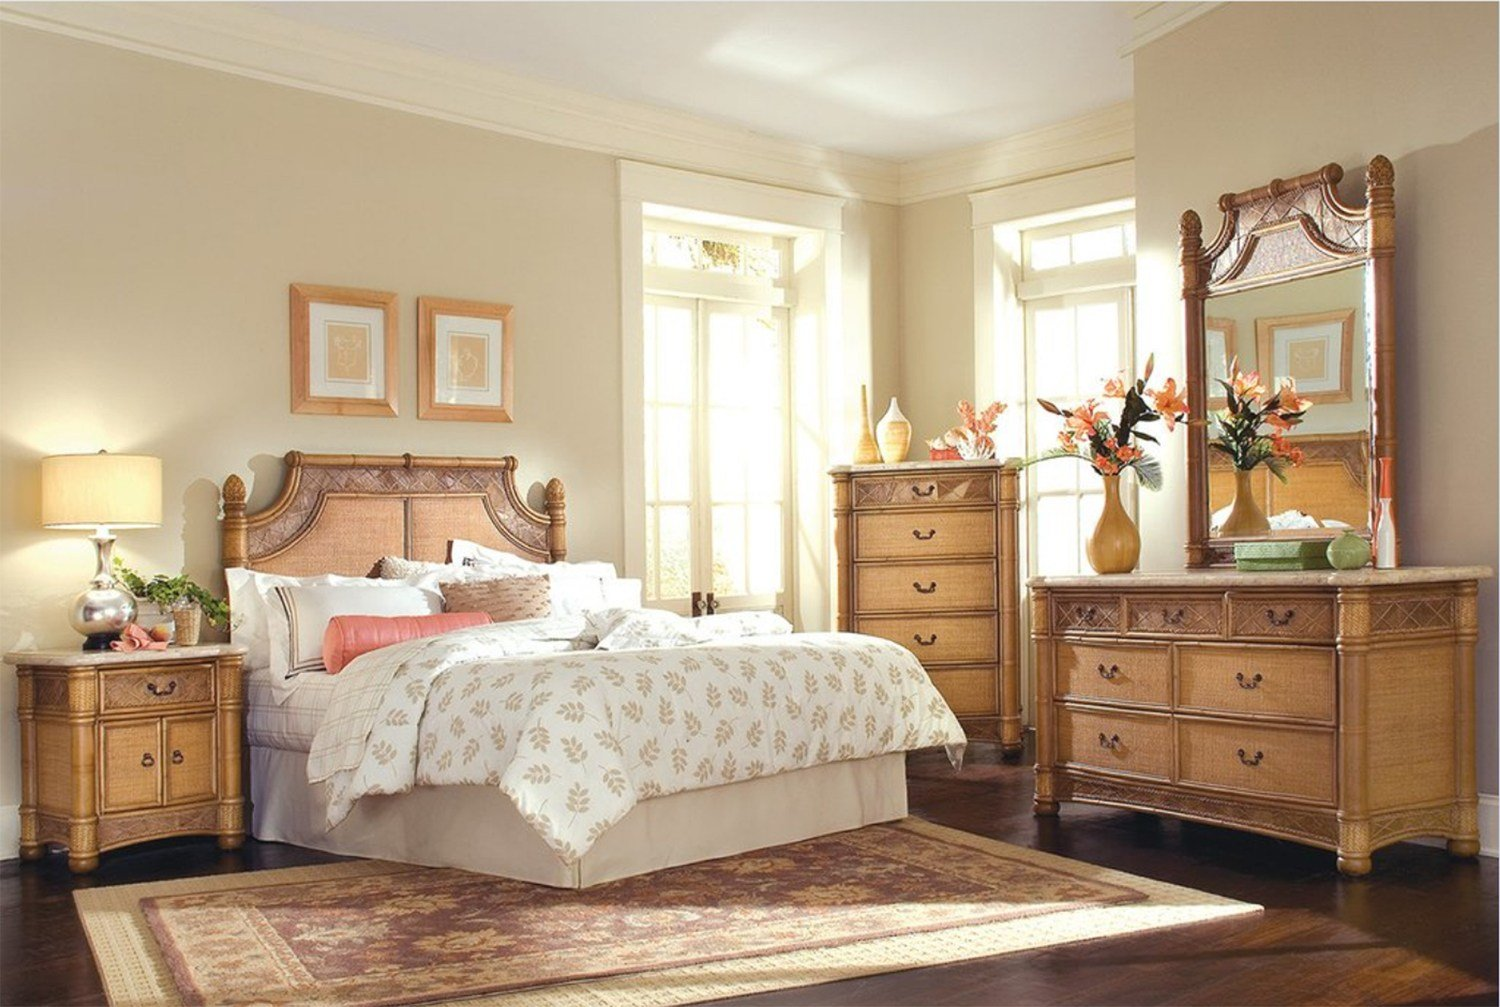 Best Valencia 4 Pc Bedroom Set Model 9015 By Capris Furniture With Pictures